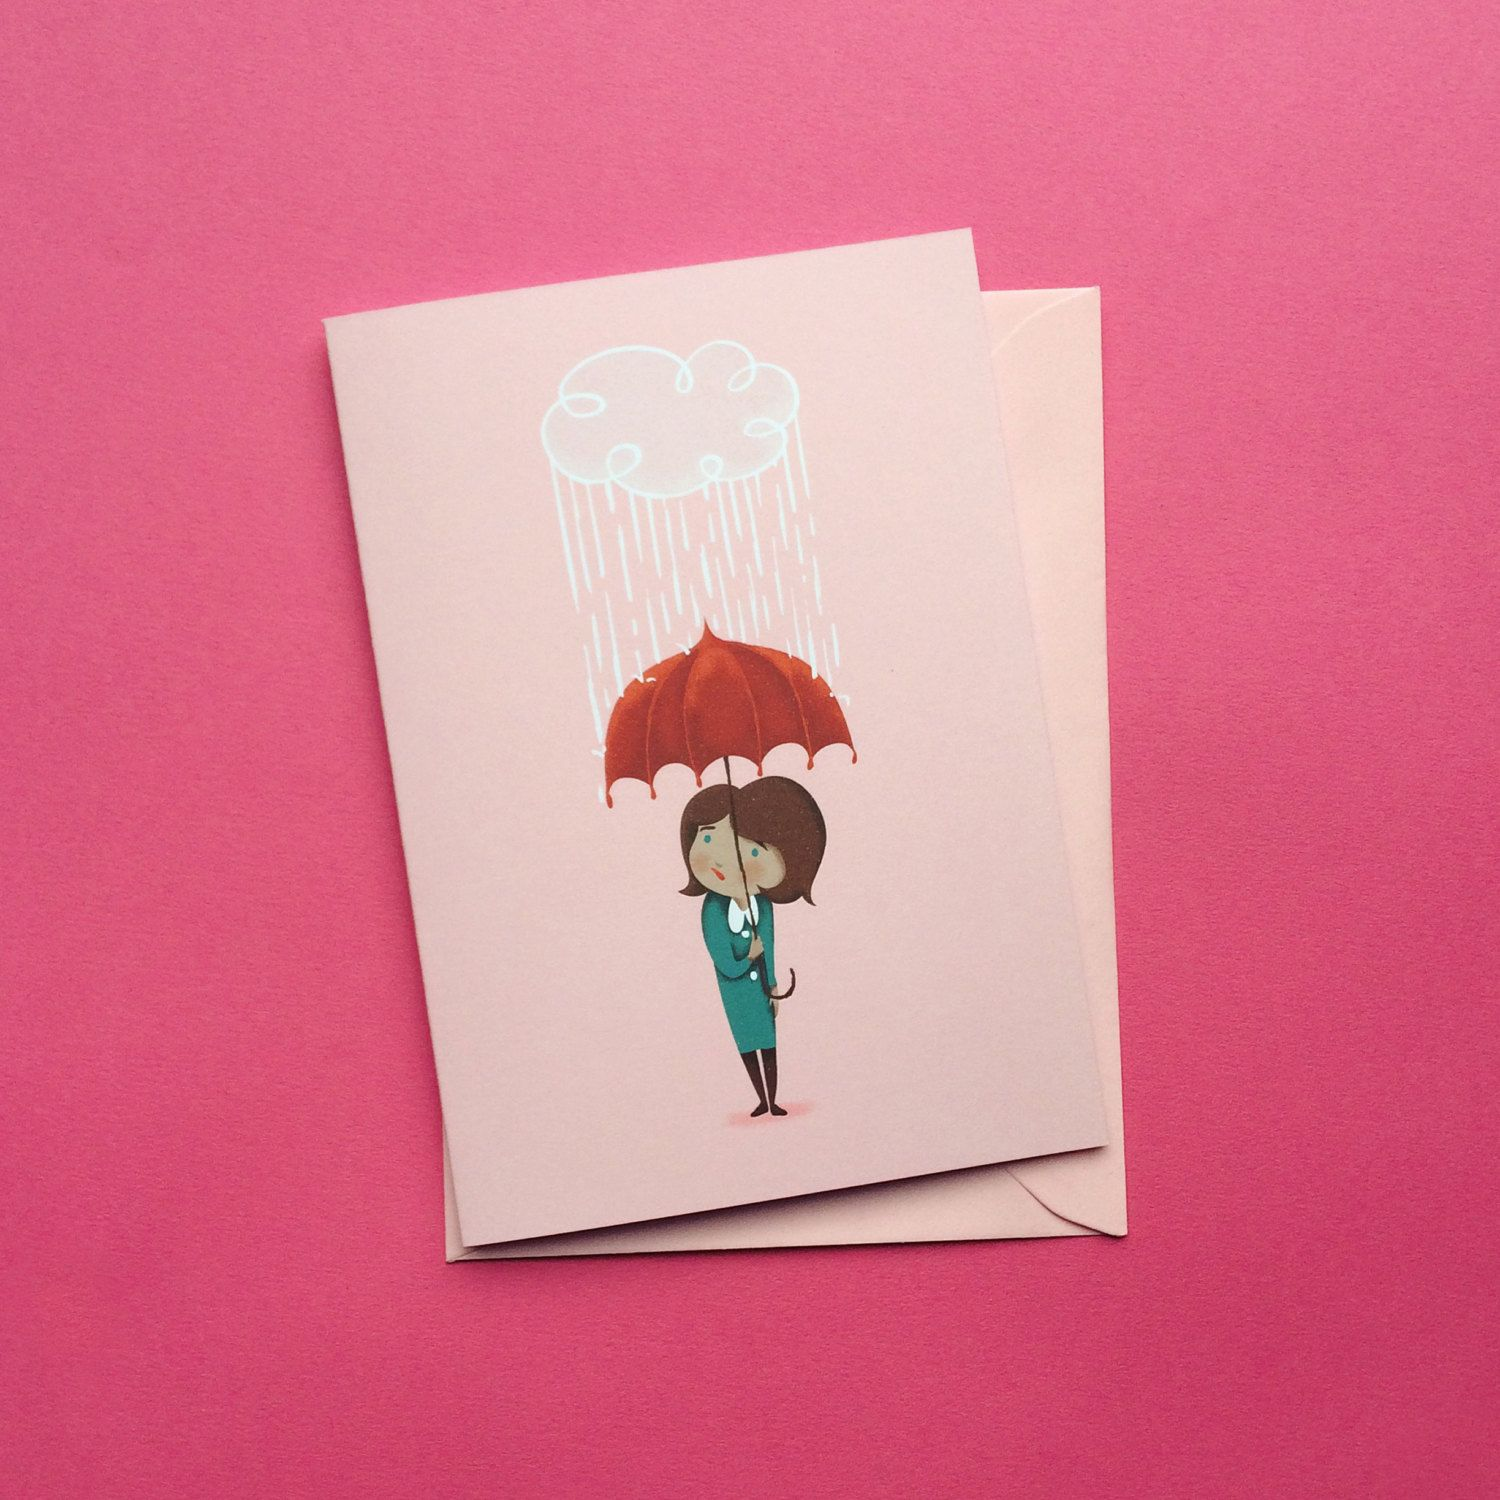 Sympathy greeting card im sorry card card for a friend here sympathy greeting card im sorry card card for a friend here for you thinking of you bad day card sympathy card sorry card by lizharry kristyandbryce Images